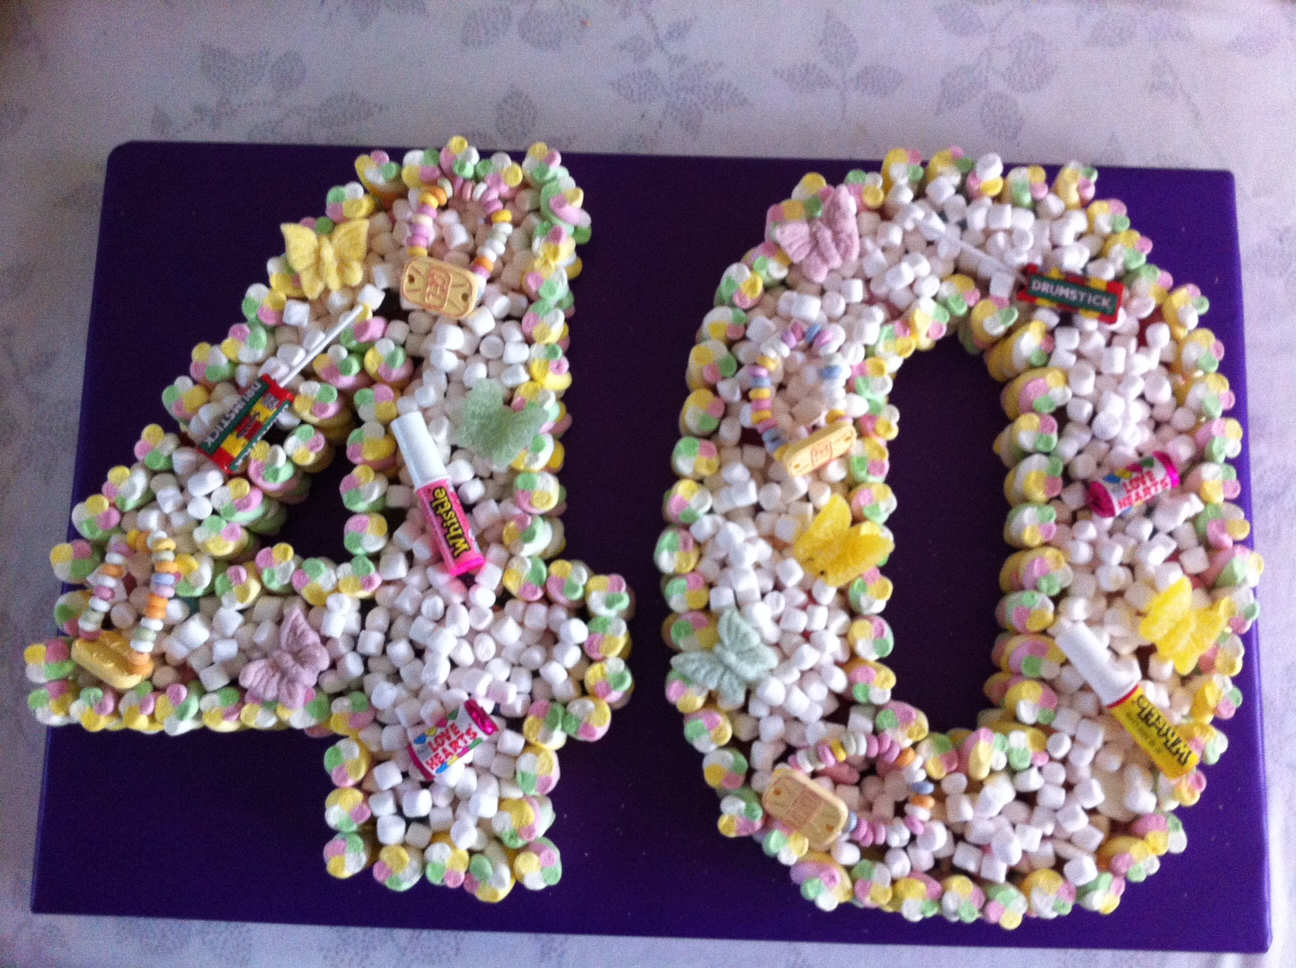 Gallery 6 Cakes Made Of Sweets Call Free 0800 756 5545